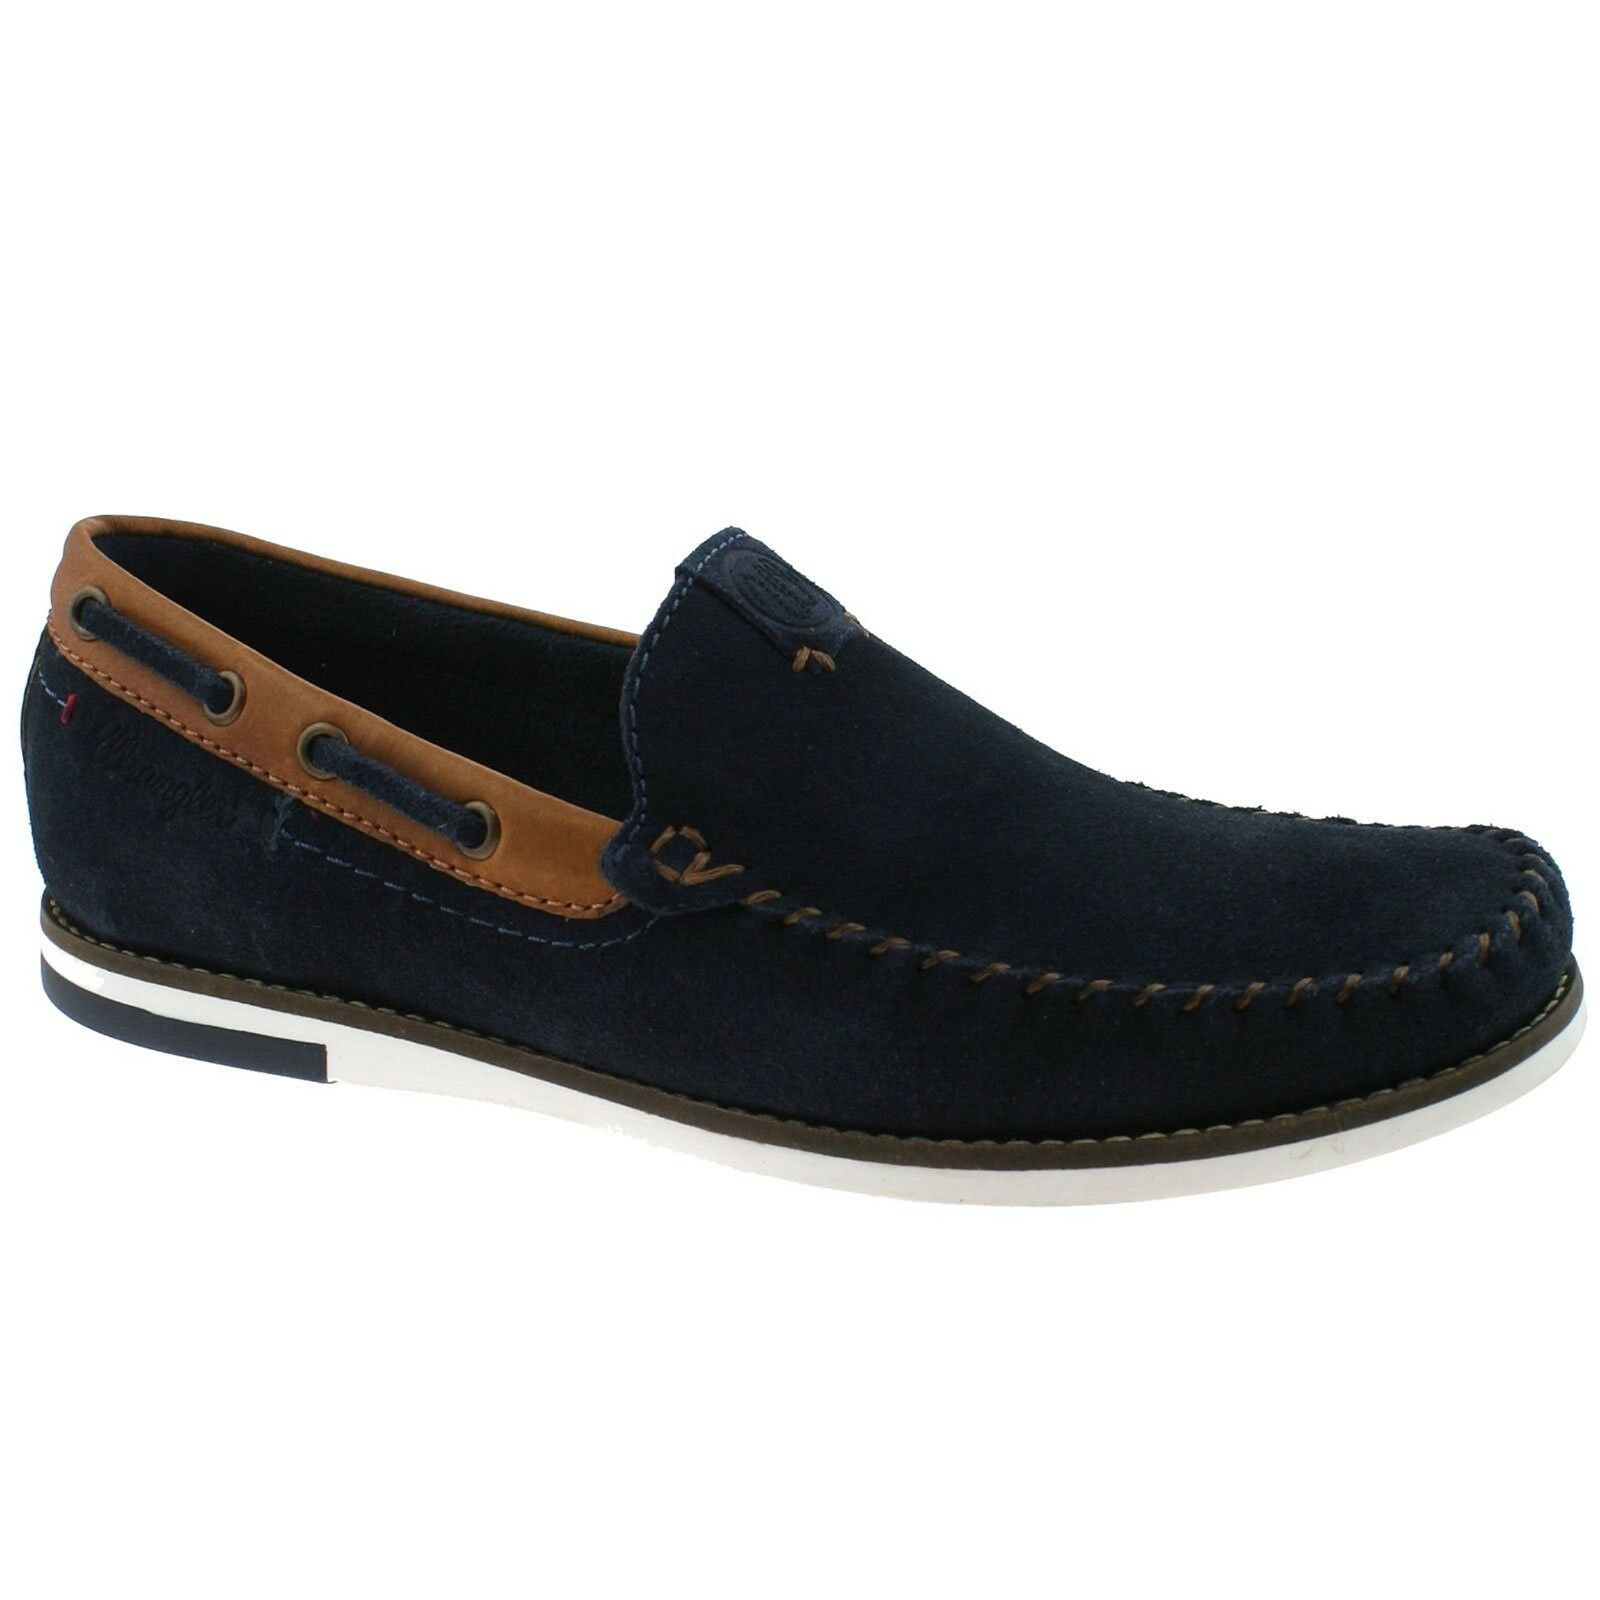 WRANGLER Sharky Mens Suede Leather Loafer shoes Slip Up On Casual Navy bluee